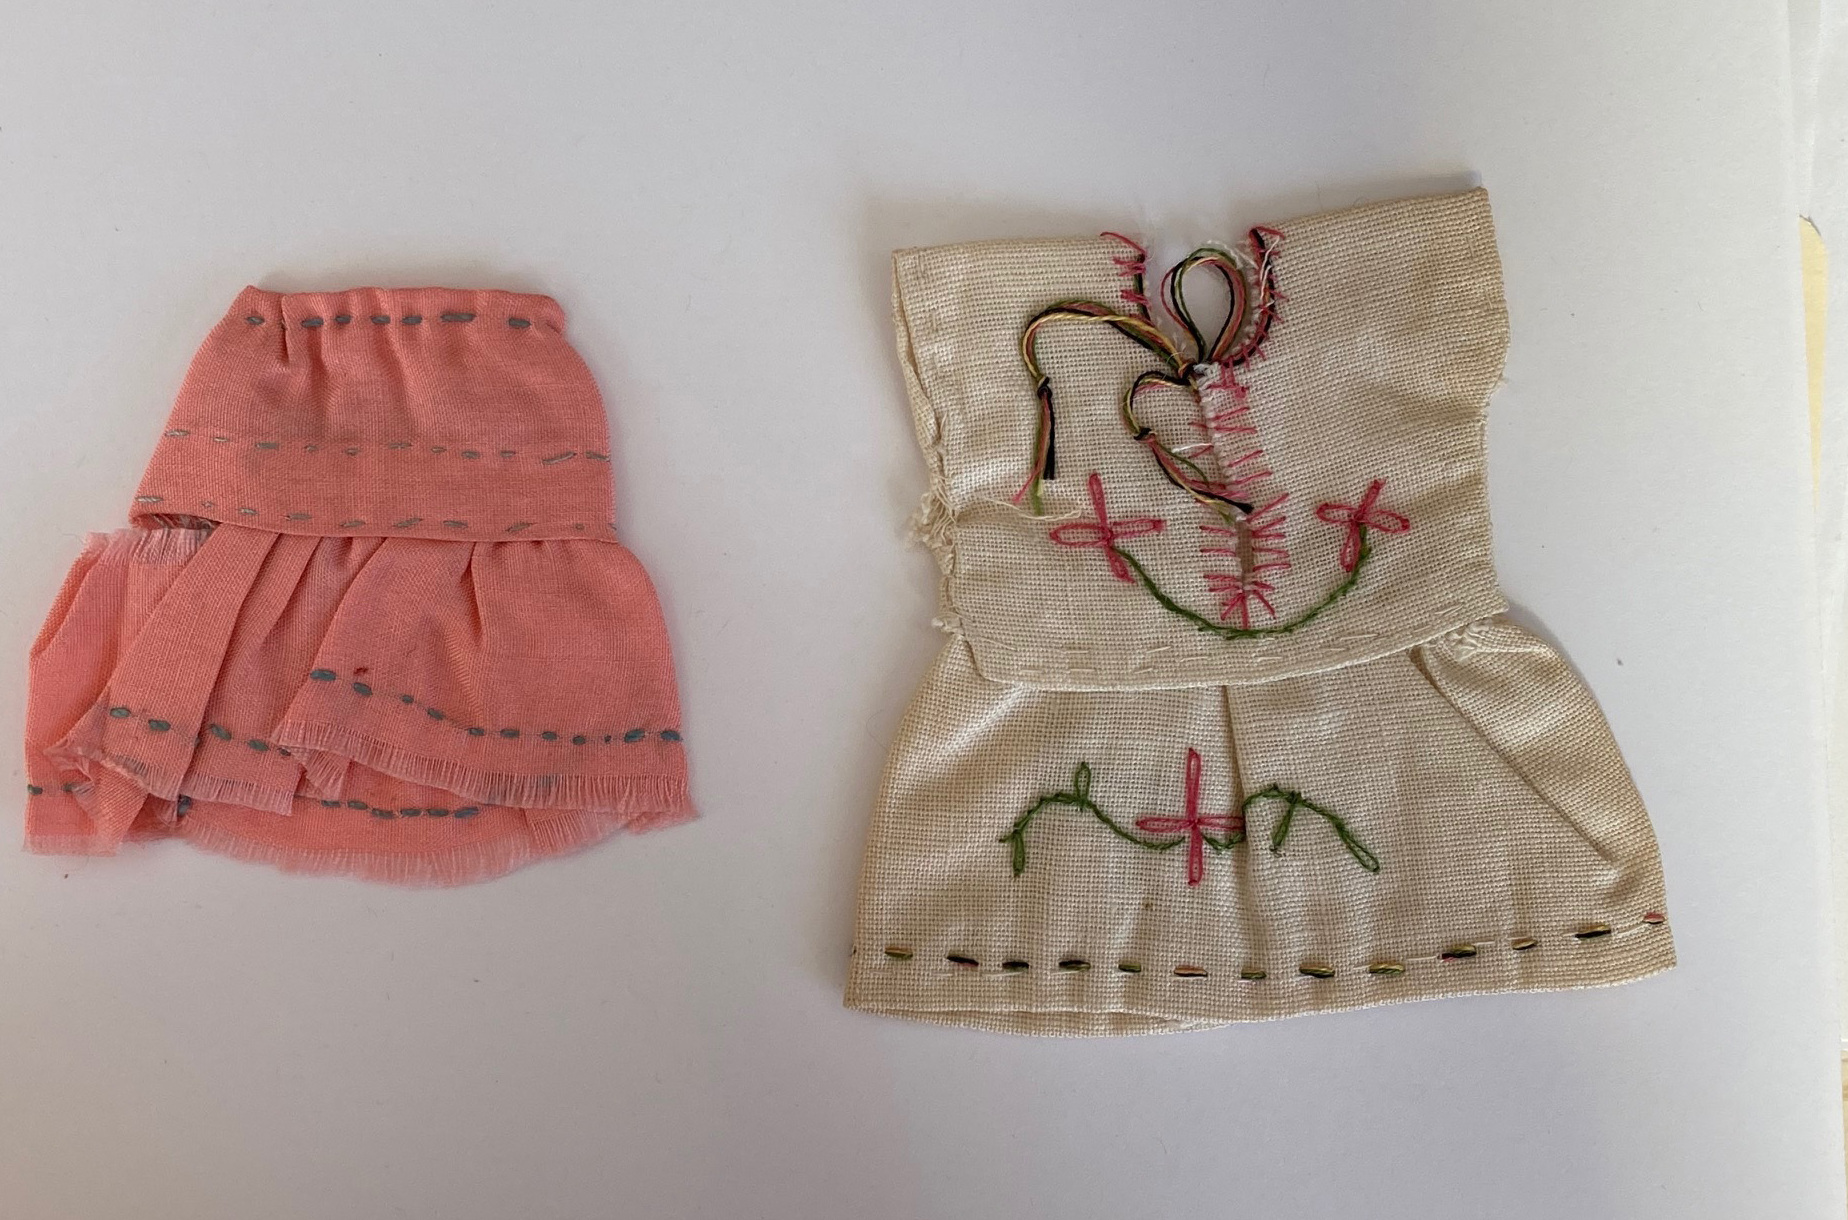 Doll clothes found in a book.